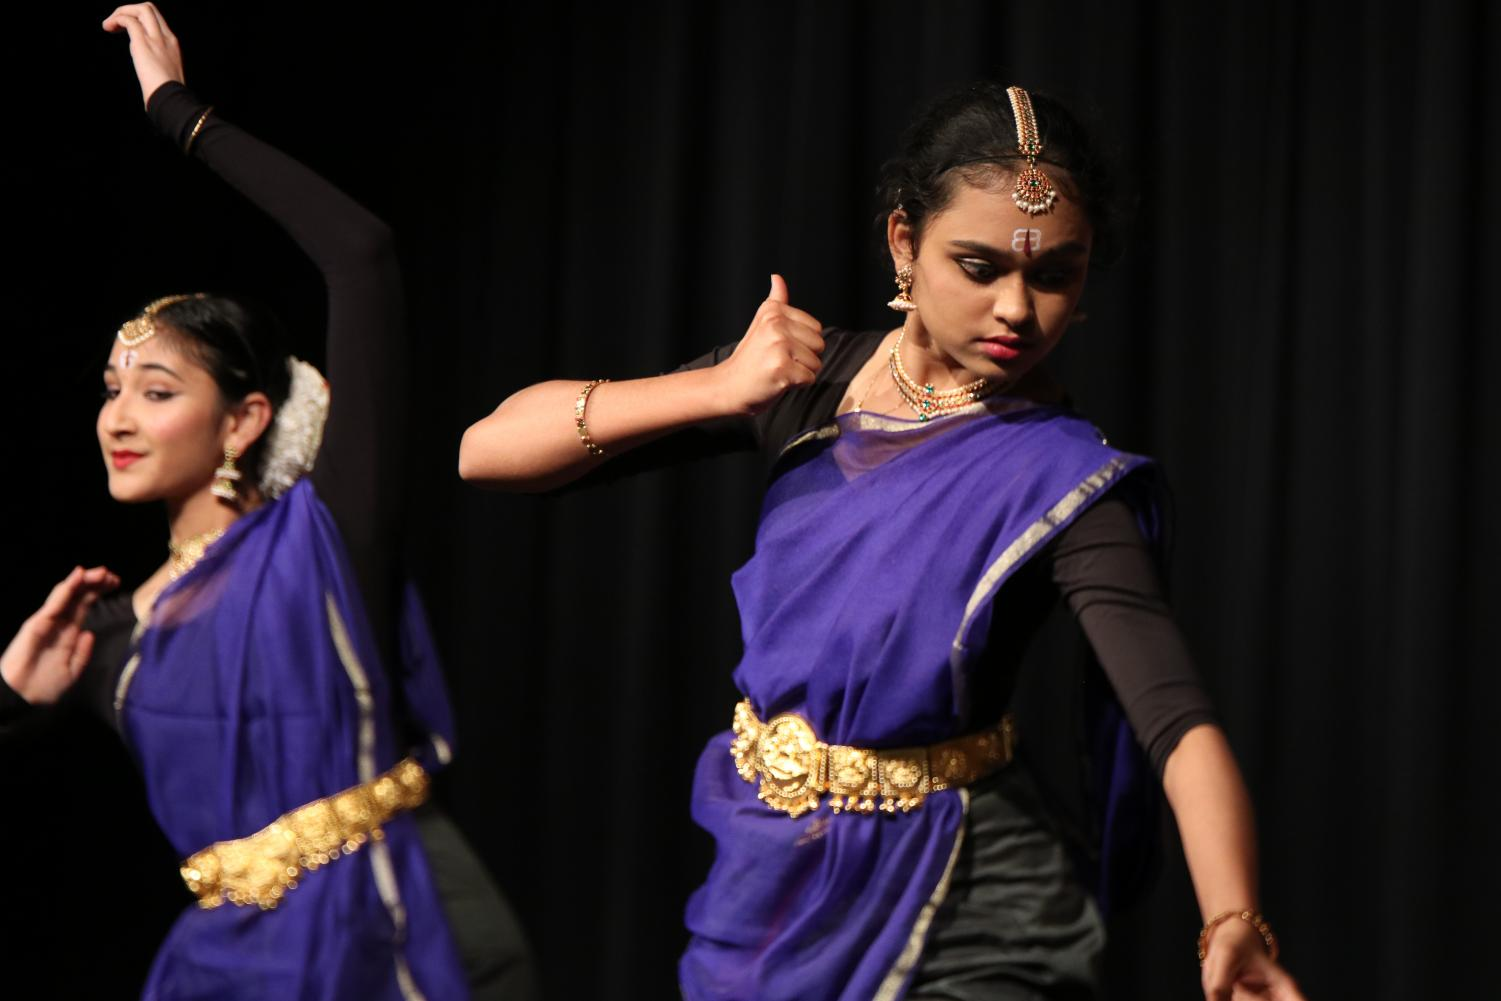 The+dancers+tell+the+story+of+Shiva%2C+a+Hindu+deity%2C+in+their+traditional+Bharatanatyam+performance.